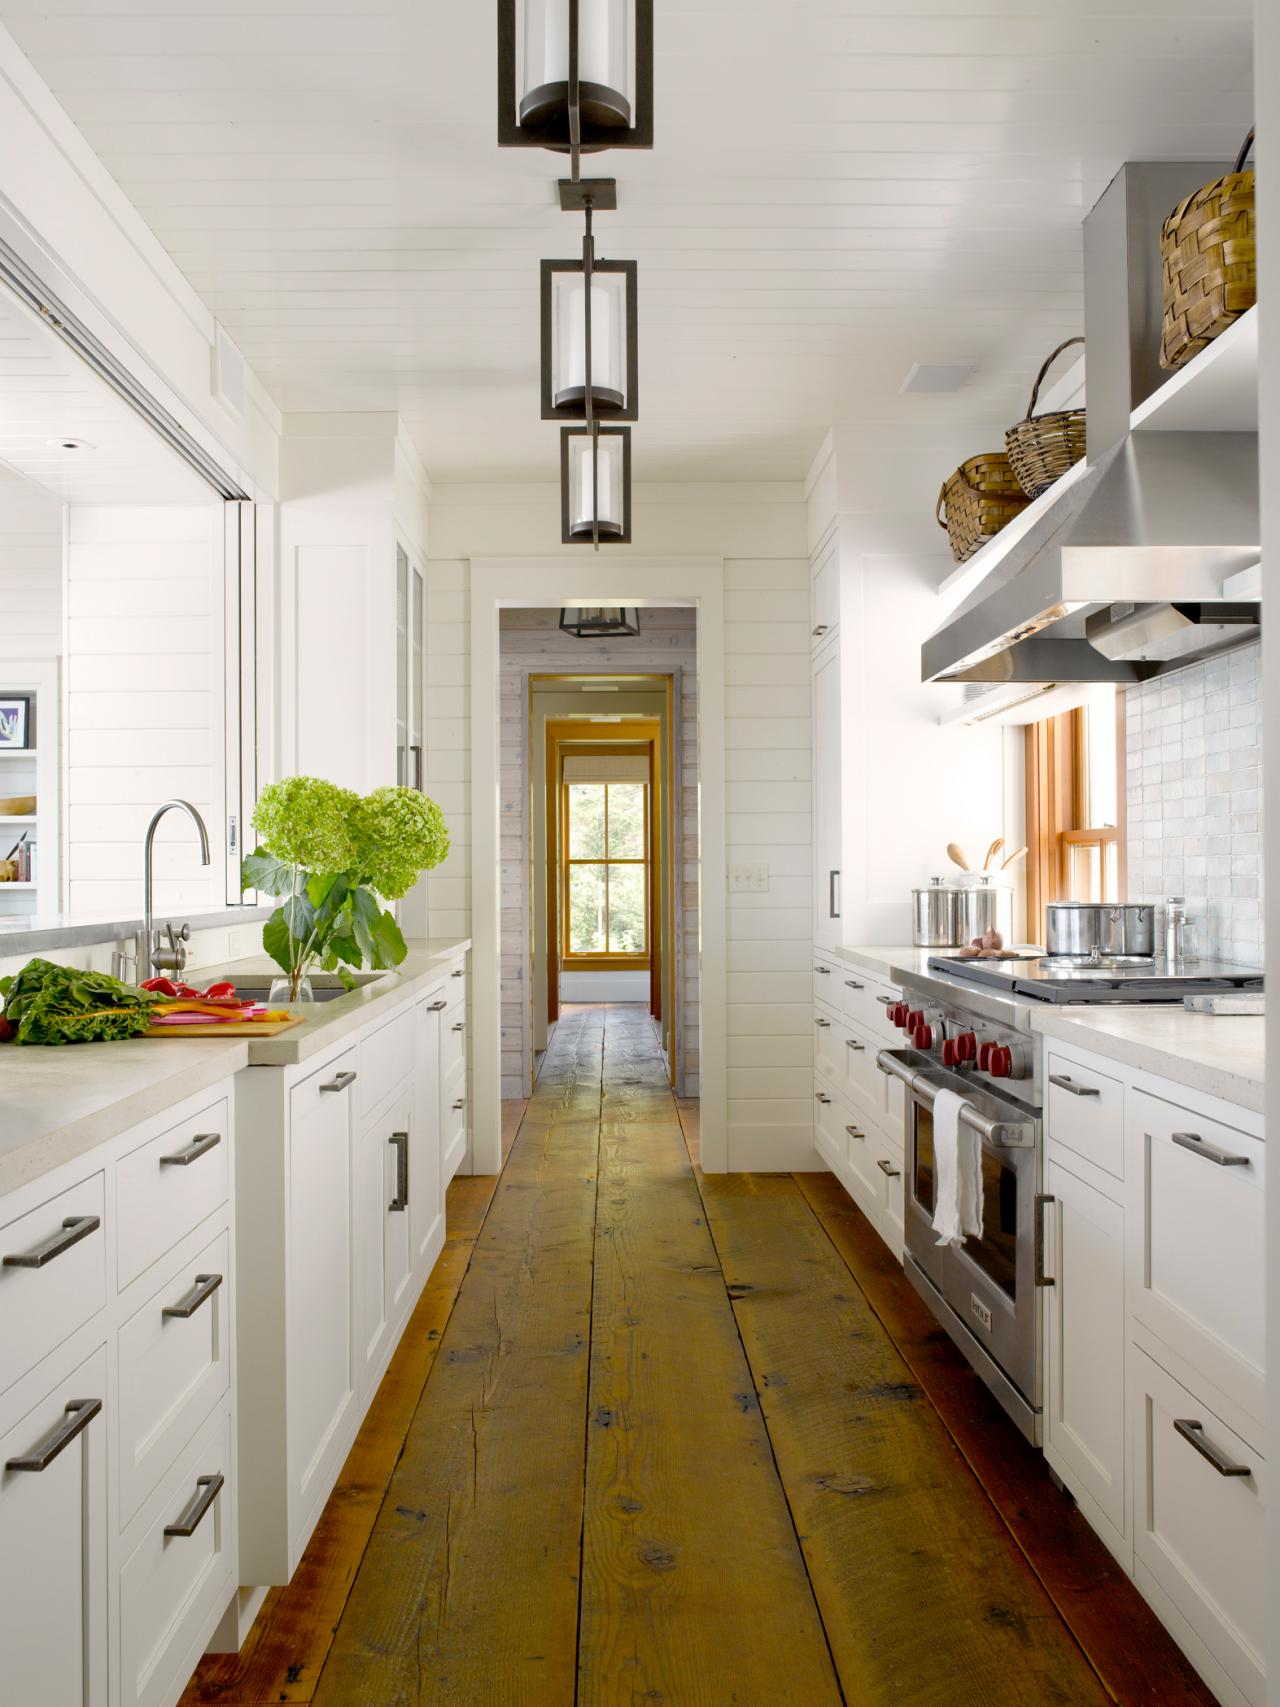 classic style furniture for practical chic interiors small classic style furniture fro practical chic interiors nice galley kitchen in the country house